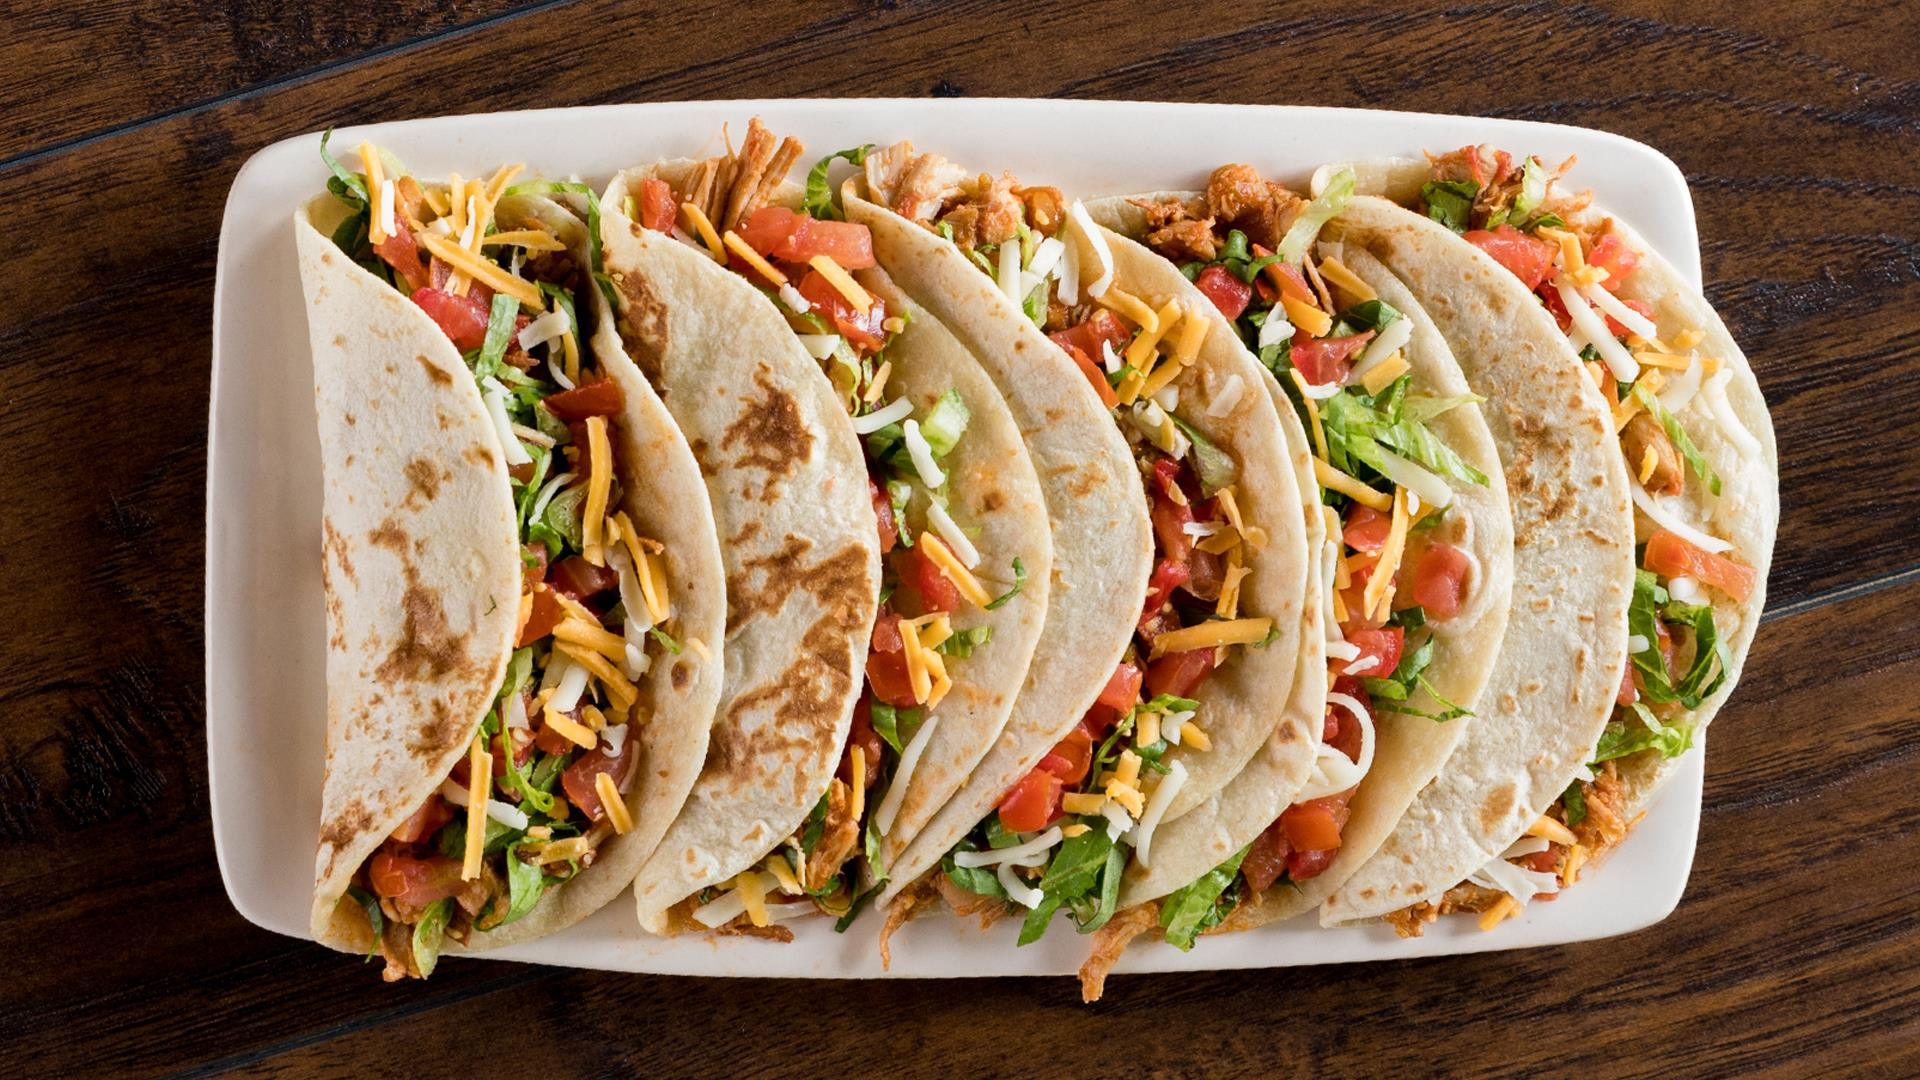 Some delicious $2 tacos are a feature of On The Border fundraising, similar to Chili's fundraising!